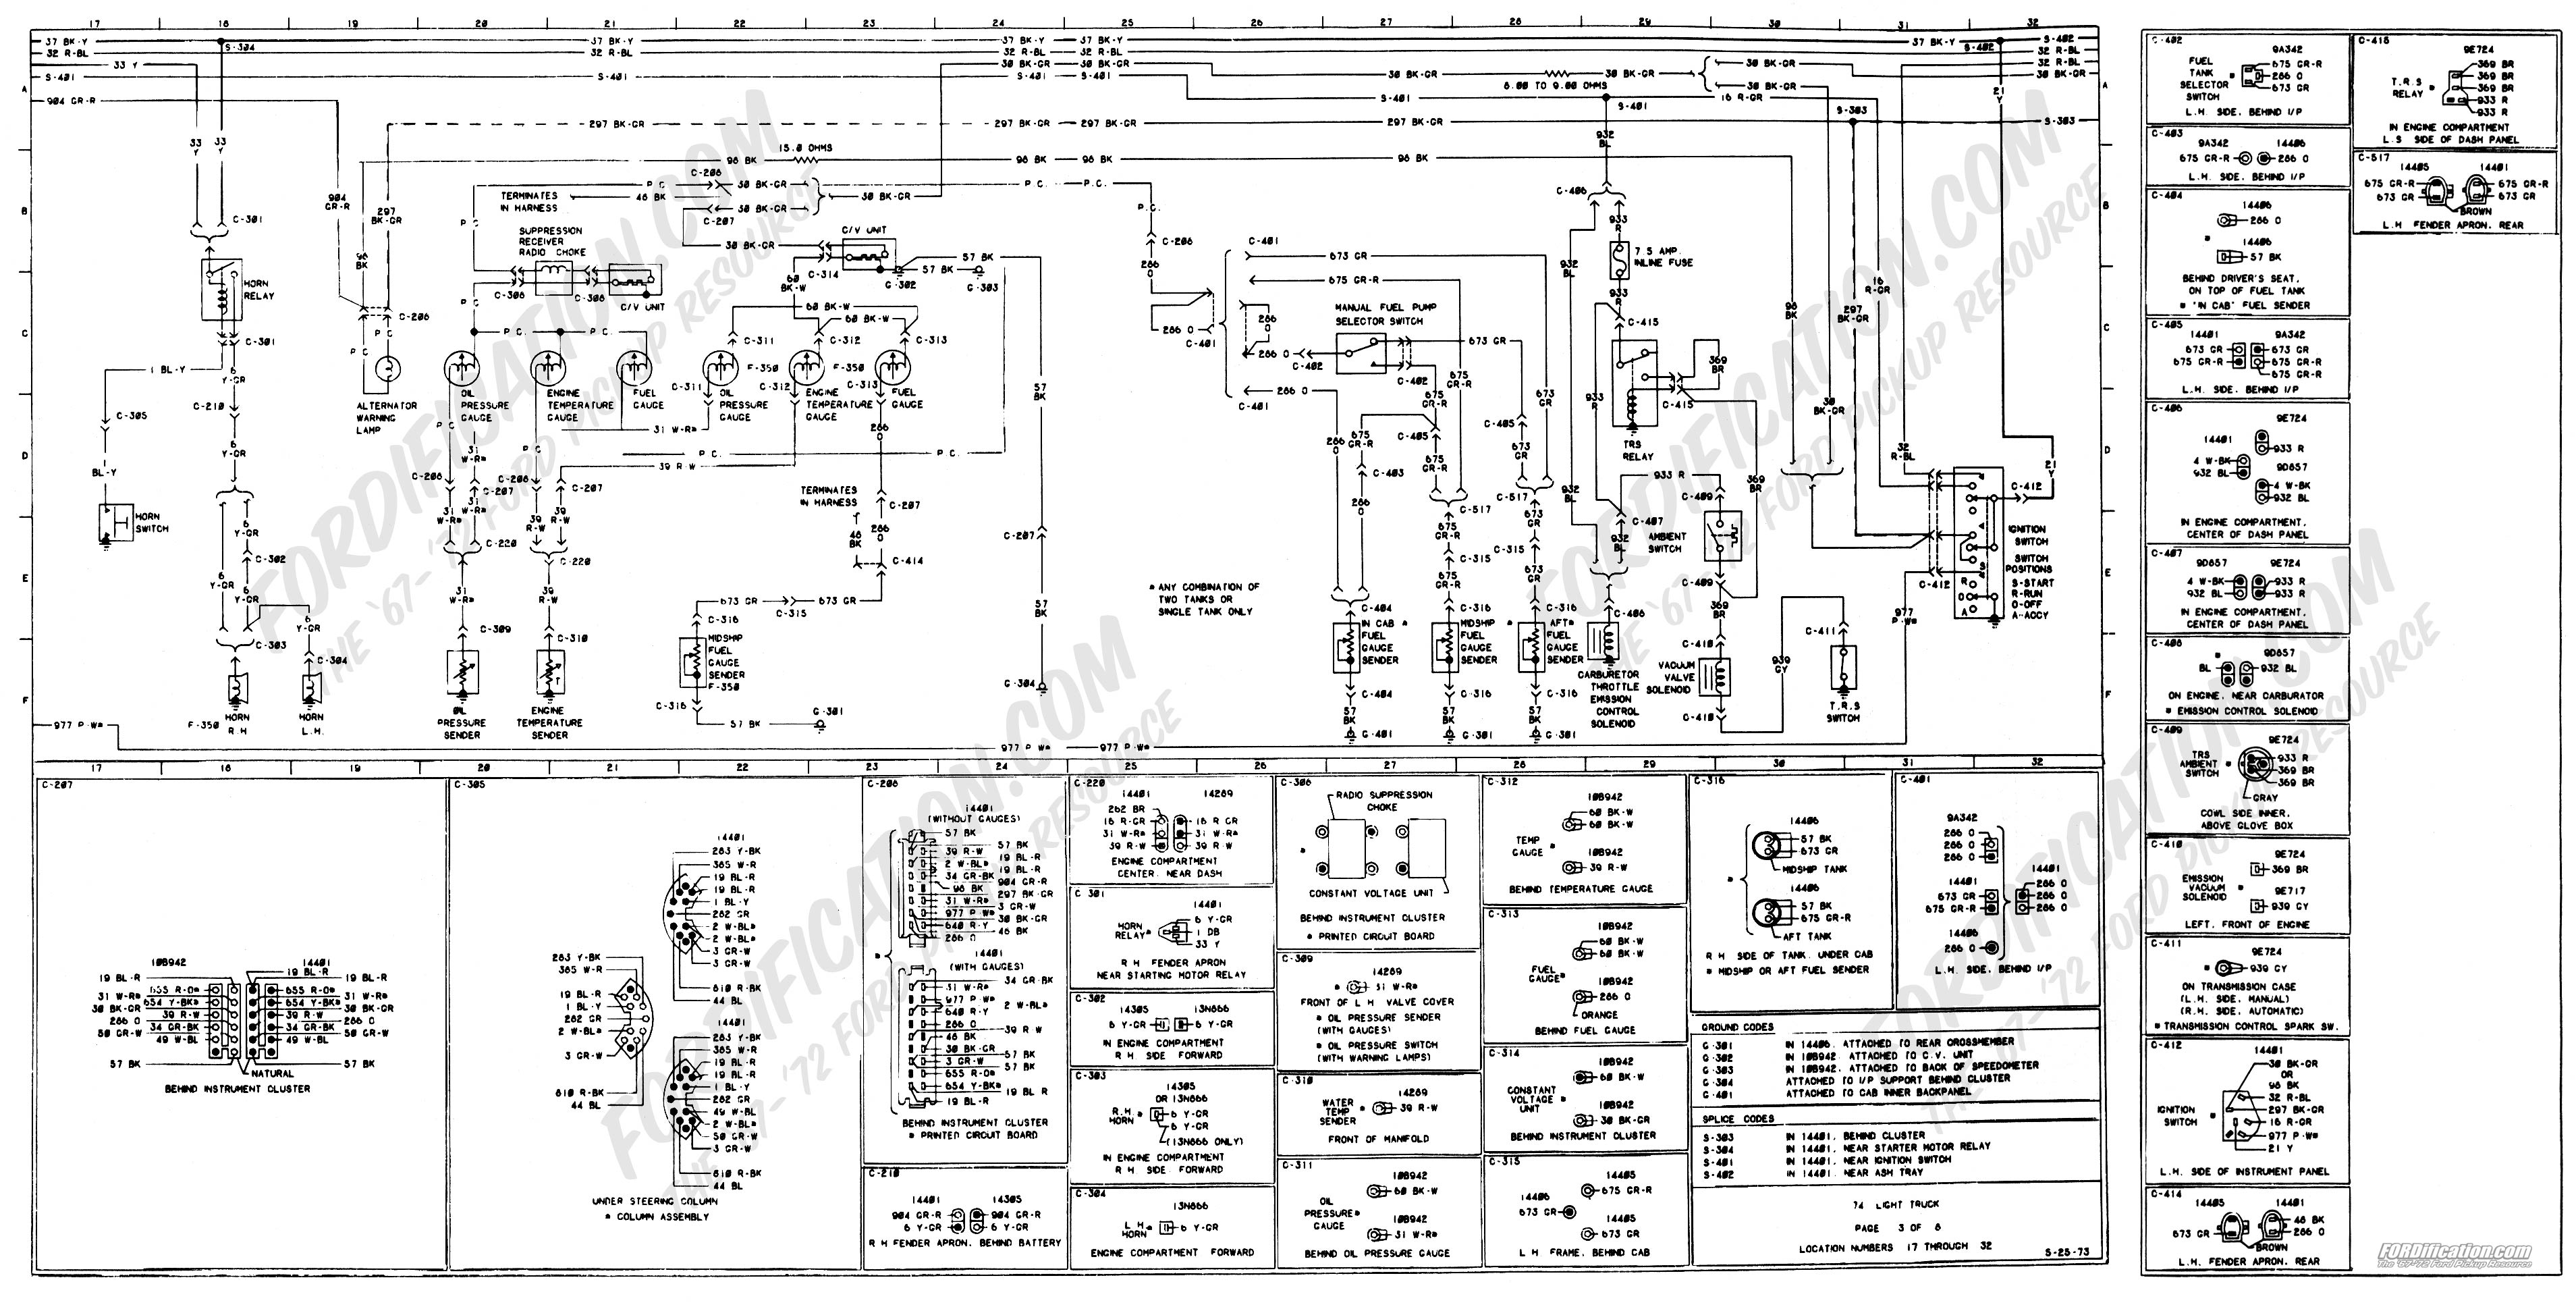 1979 Ford E150 Wiring Diagram Opinions About 2003 E250 Fuse Box 1973 Truck Diagrams Schematics Fordification Net Rh E 250 2002 450